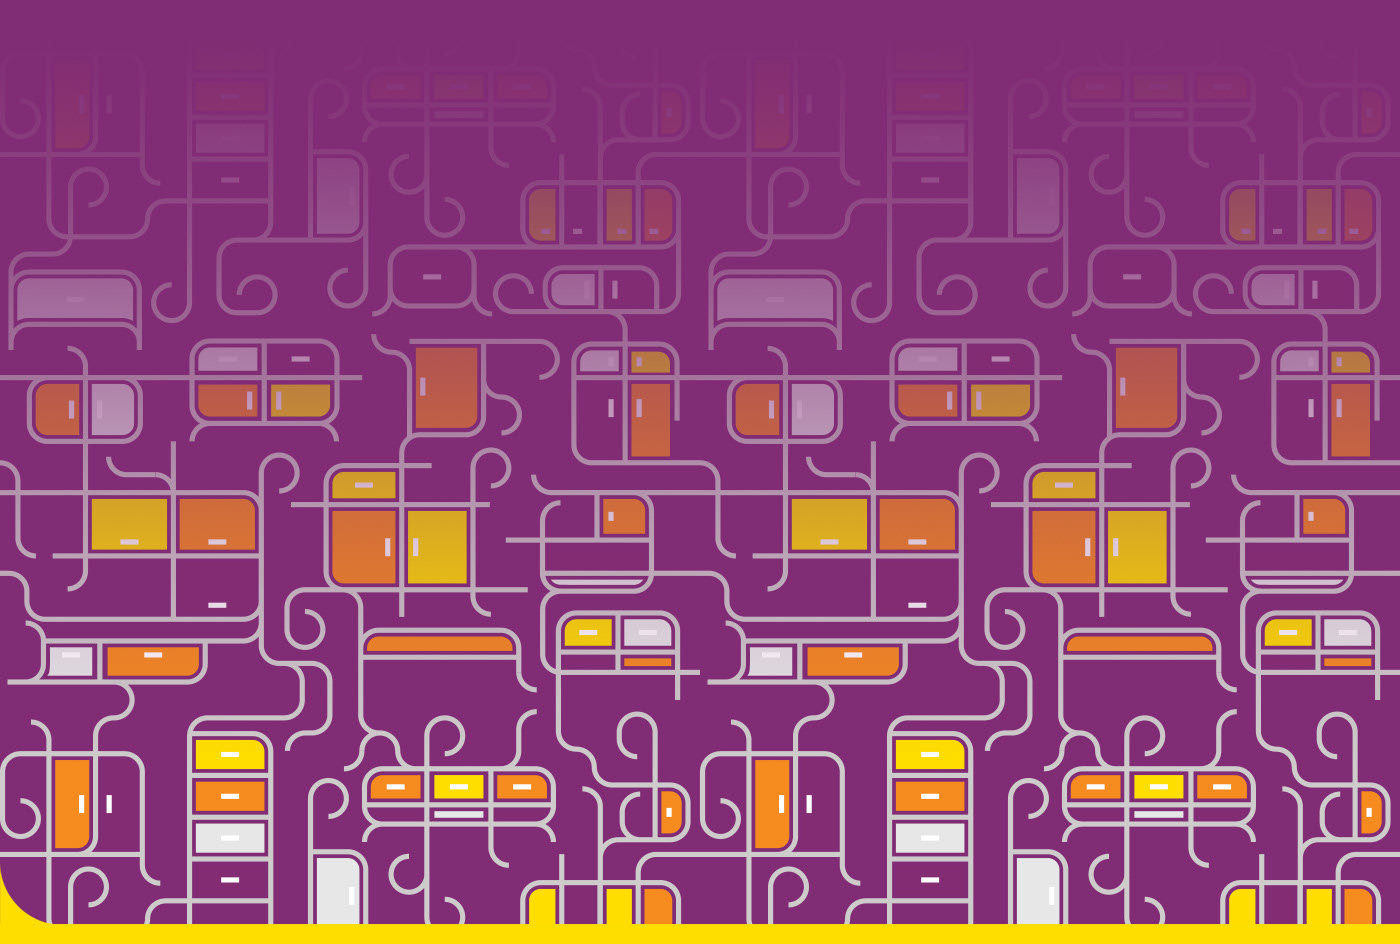 Abstract illustration of connected orange and yellow shapes on purple background.